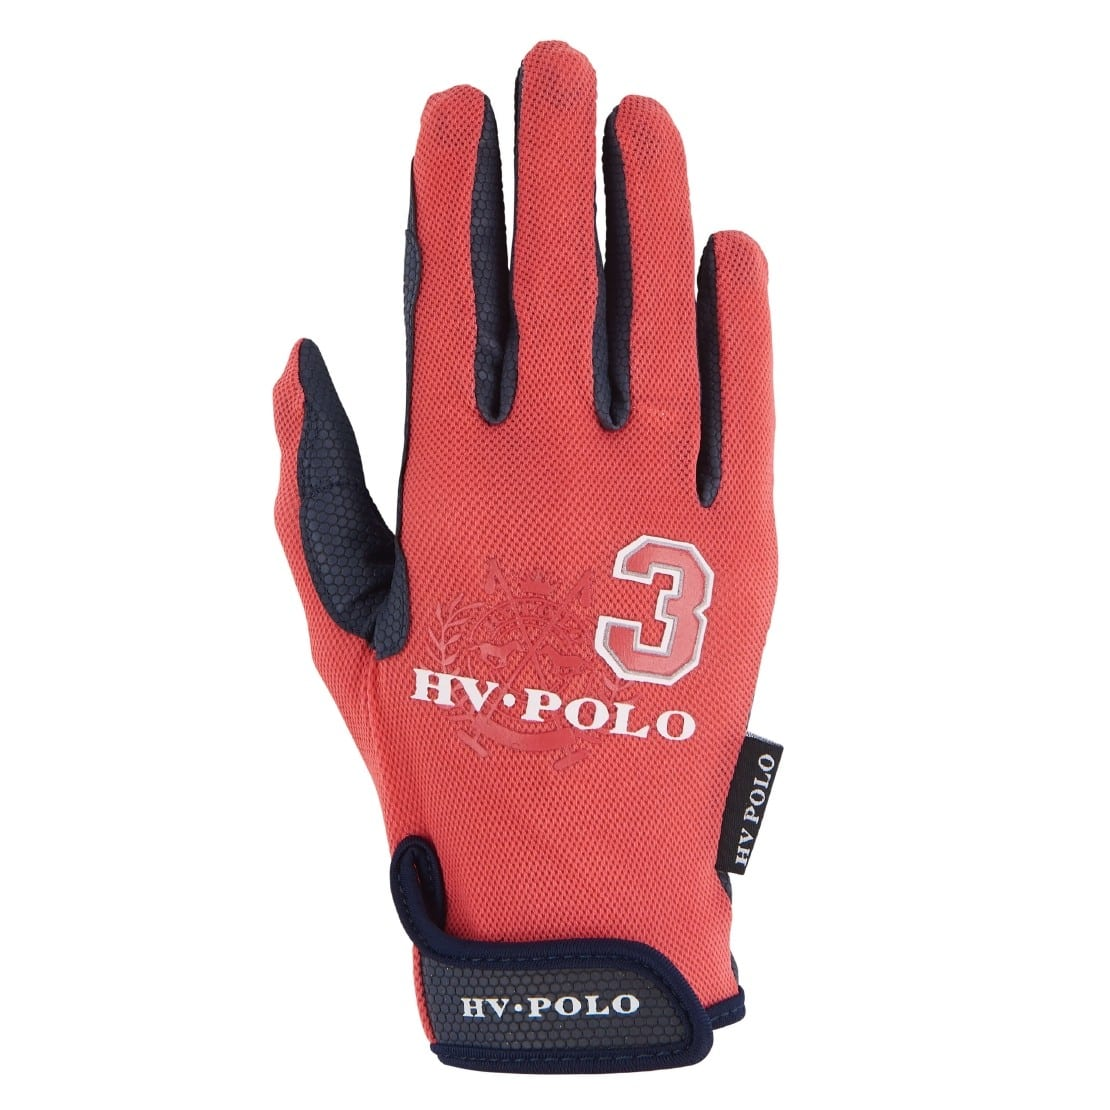 Handschuhe Favouritas XS Bright Coral